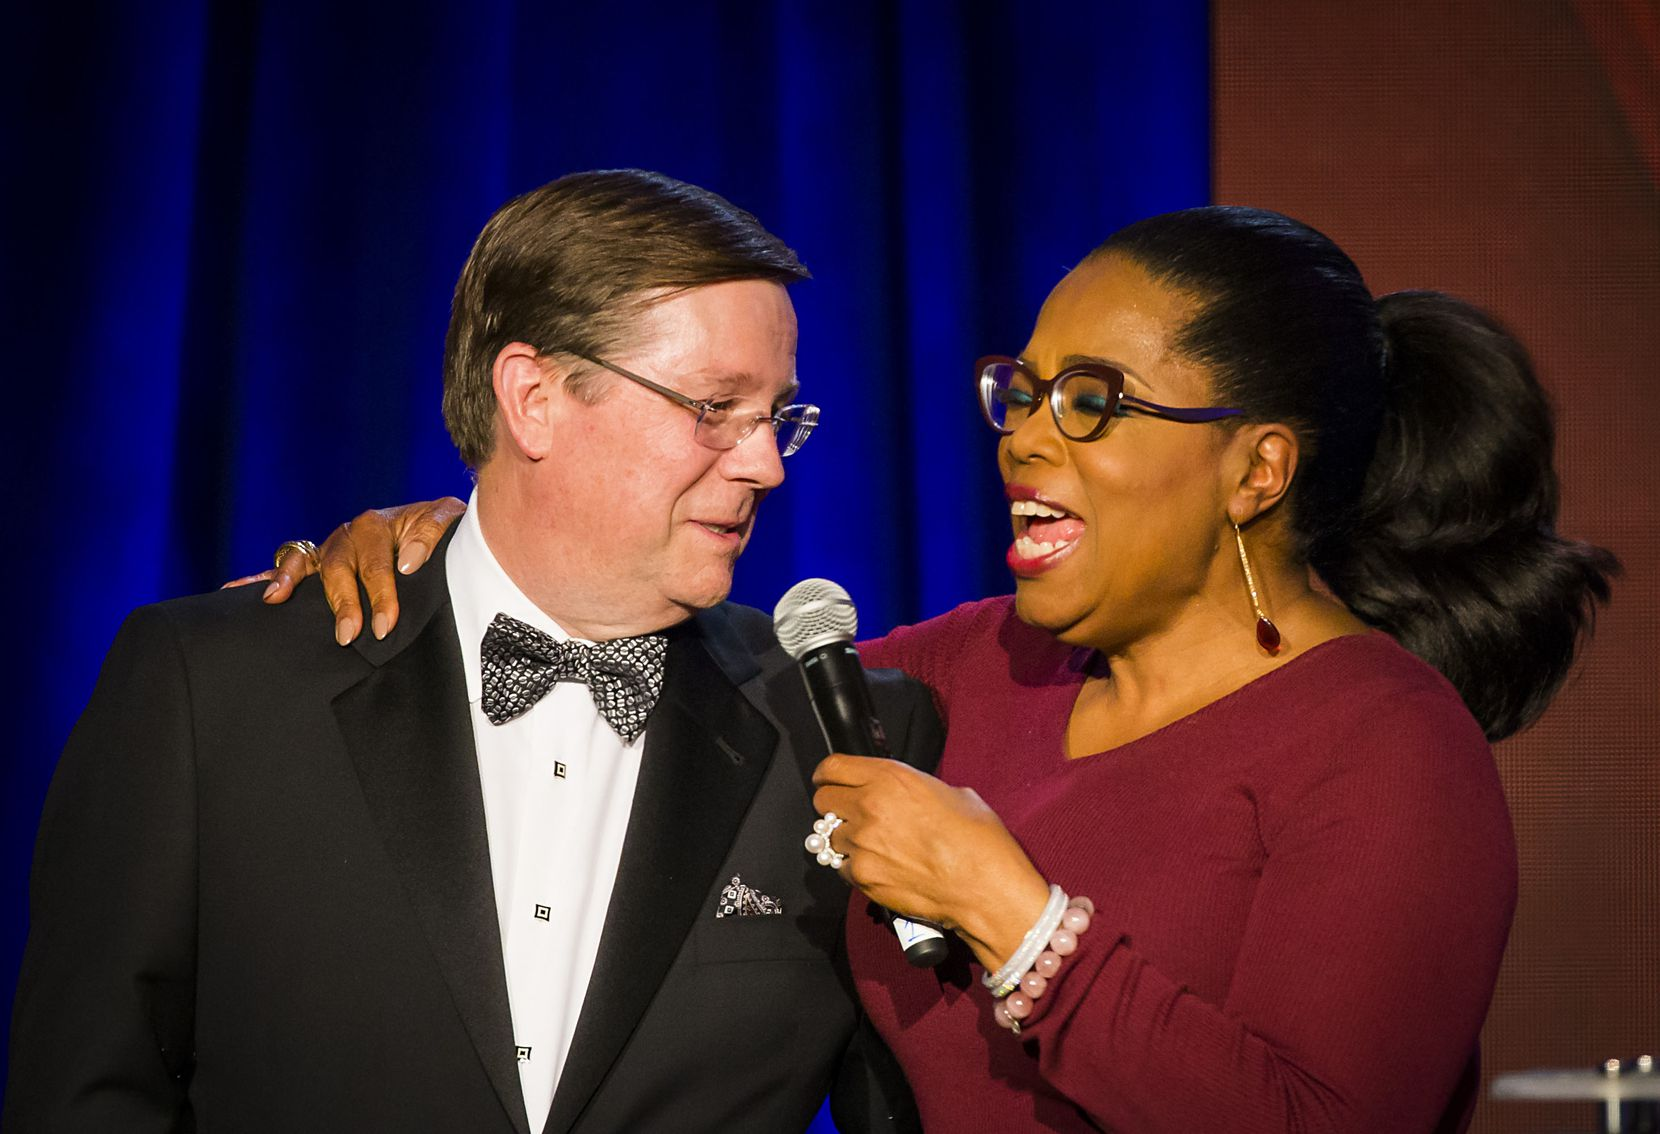 Oprah Winfrey puts her arm around Jim Lentz, chief executive officer of Toyota Motor North America, as takes the stage to pledge a donation during the Minnie's Food Pantry 10th anniversary gala at the Omni Frisco Hotel on Tuesday, April 3, 2018. During her speech, Winfrey challenged attendees to match her $250,000 donation to the organization, then a line formed and one-by-one donors took to the stage to make pledges.  By the end of the night, approximately $1.3 million had been raised.